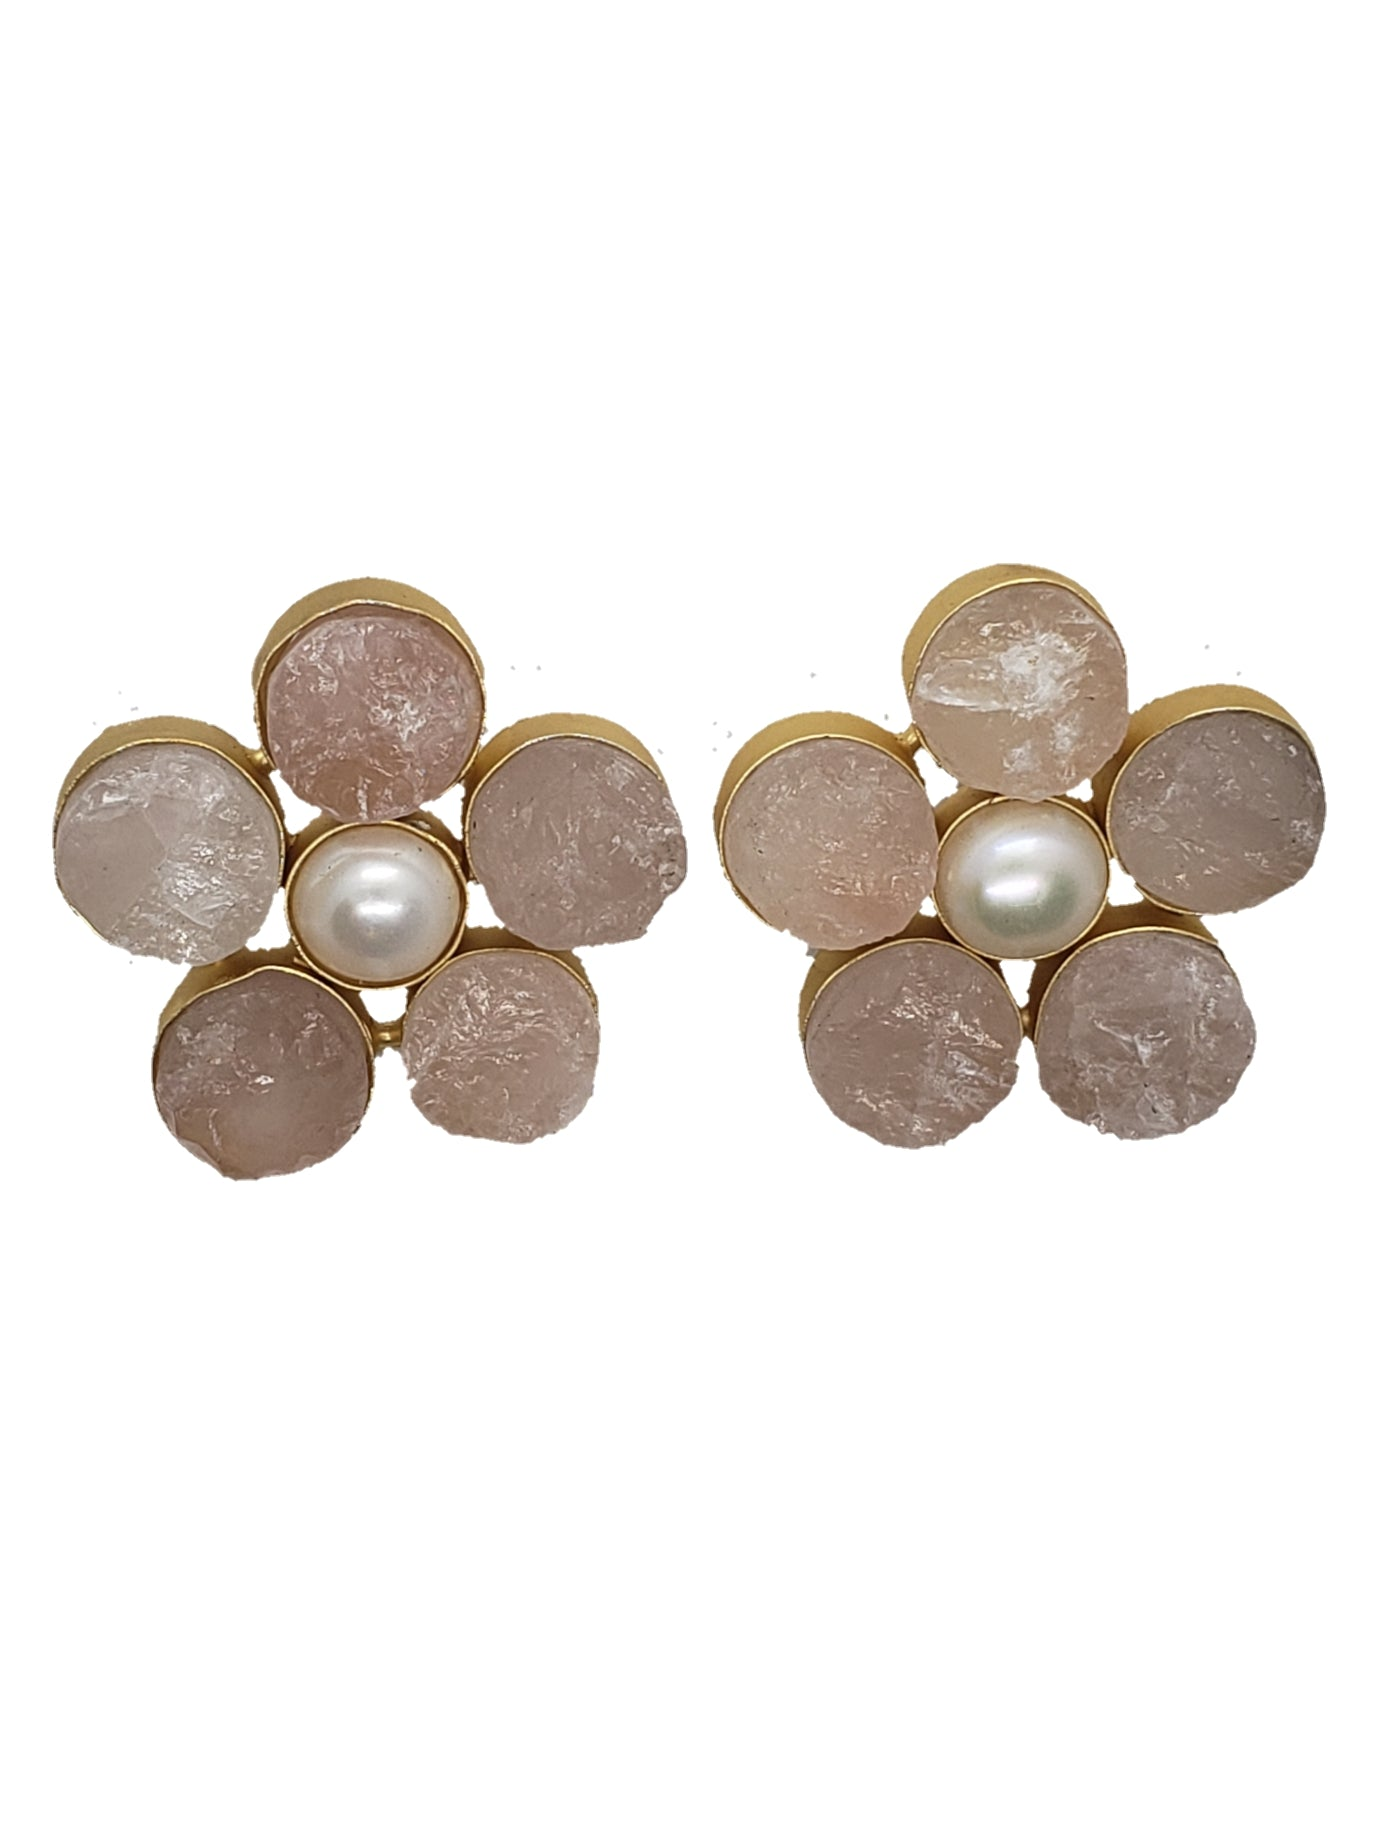 Raw Rose Quartz Stud Earrings - The Bauble Shop